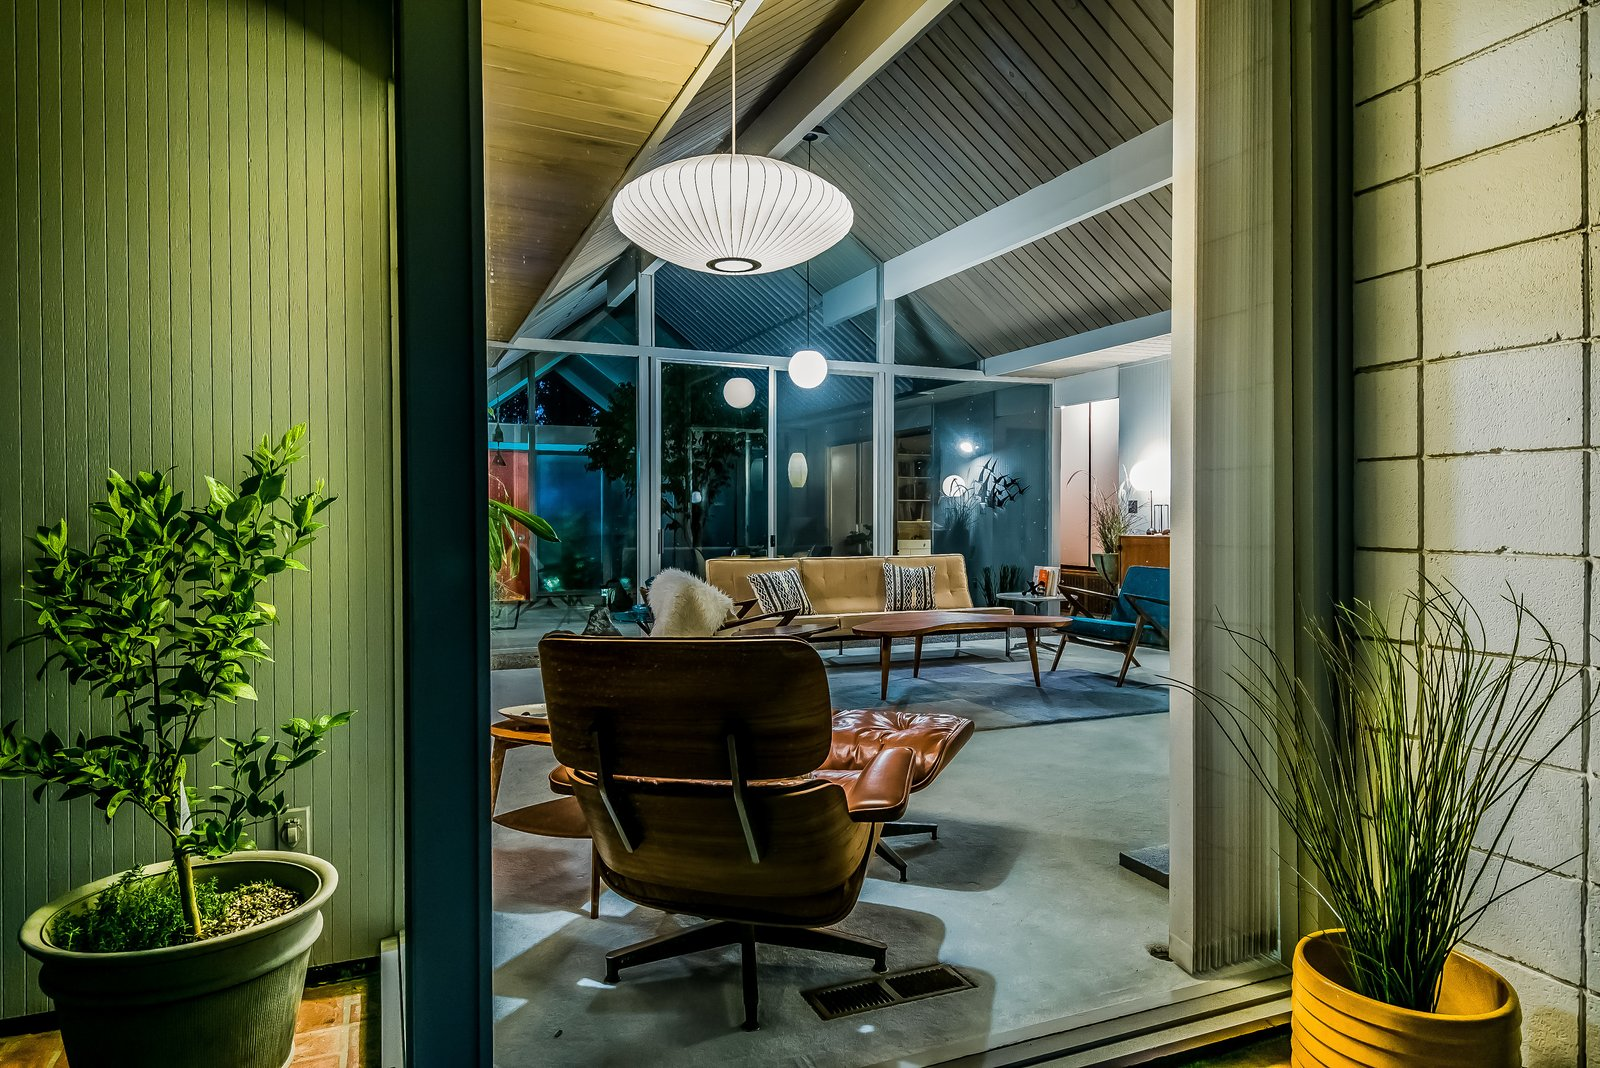 An original Eames Chair Lounge and Ottoman complete the midcentury setting.  Photo 6 of 13 in With Only One Previous Set of Owners, a Pristine Eichler Home Asks $799K